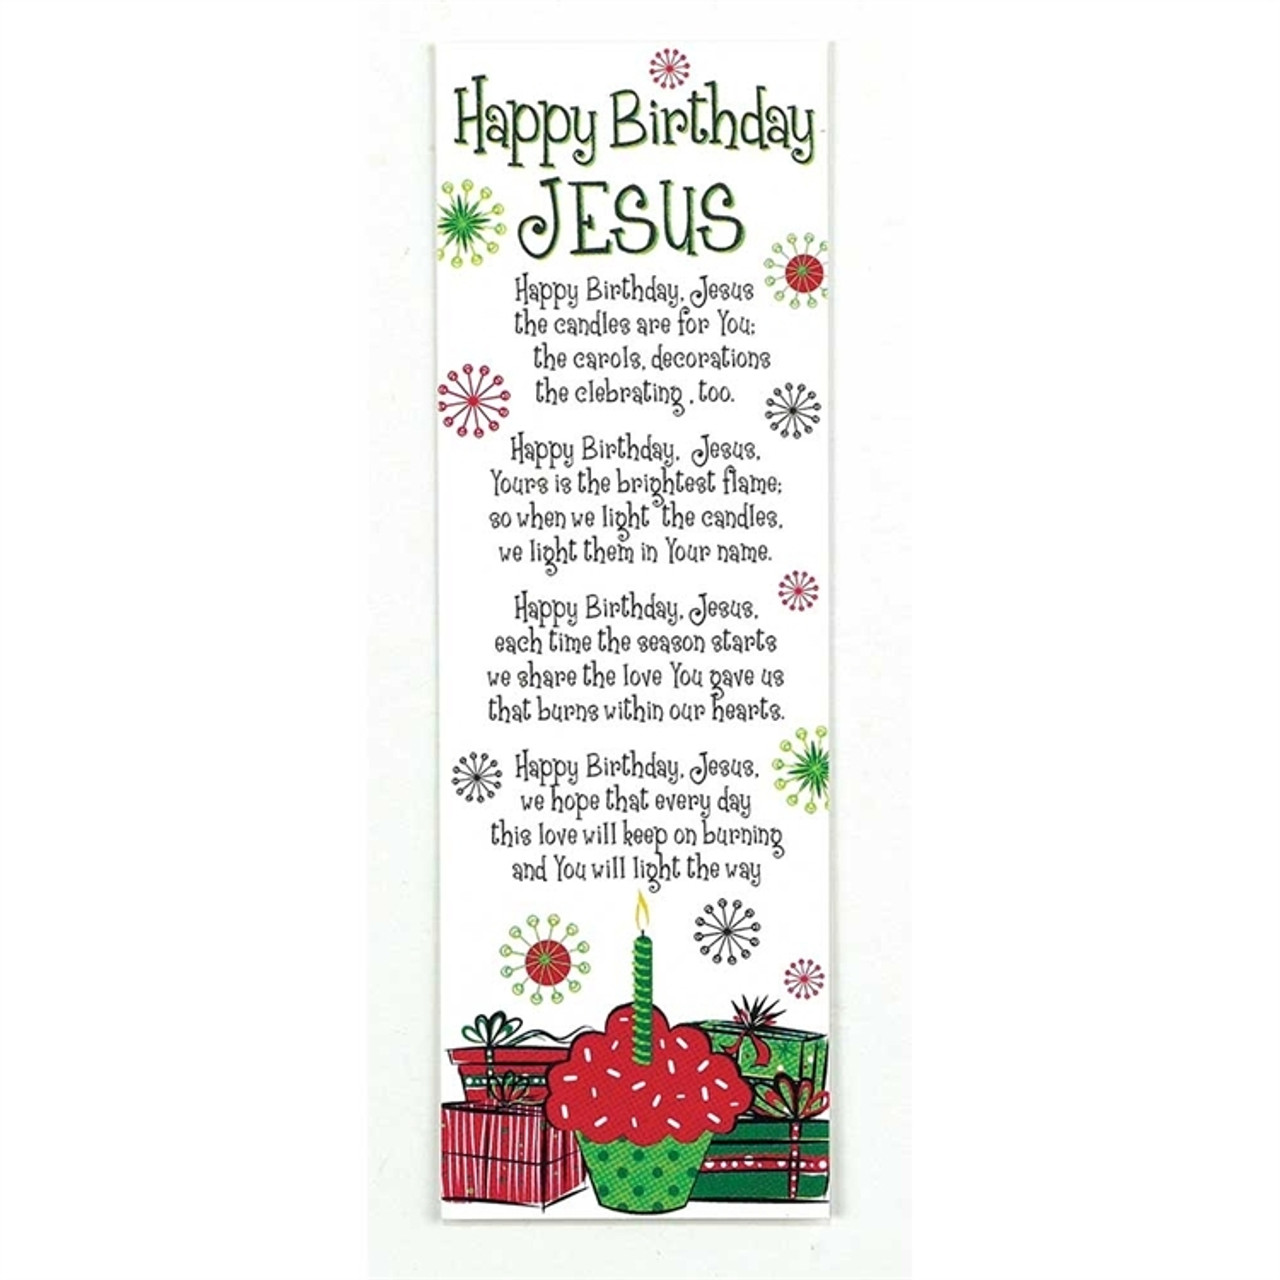 Happy Birthday Jesus Bookmark Poem Festive Colors 2 X 6 Package Of 12